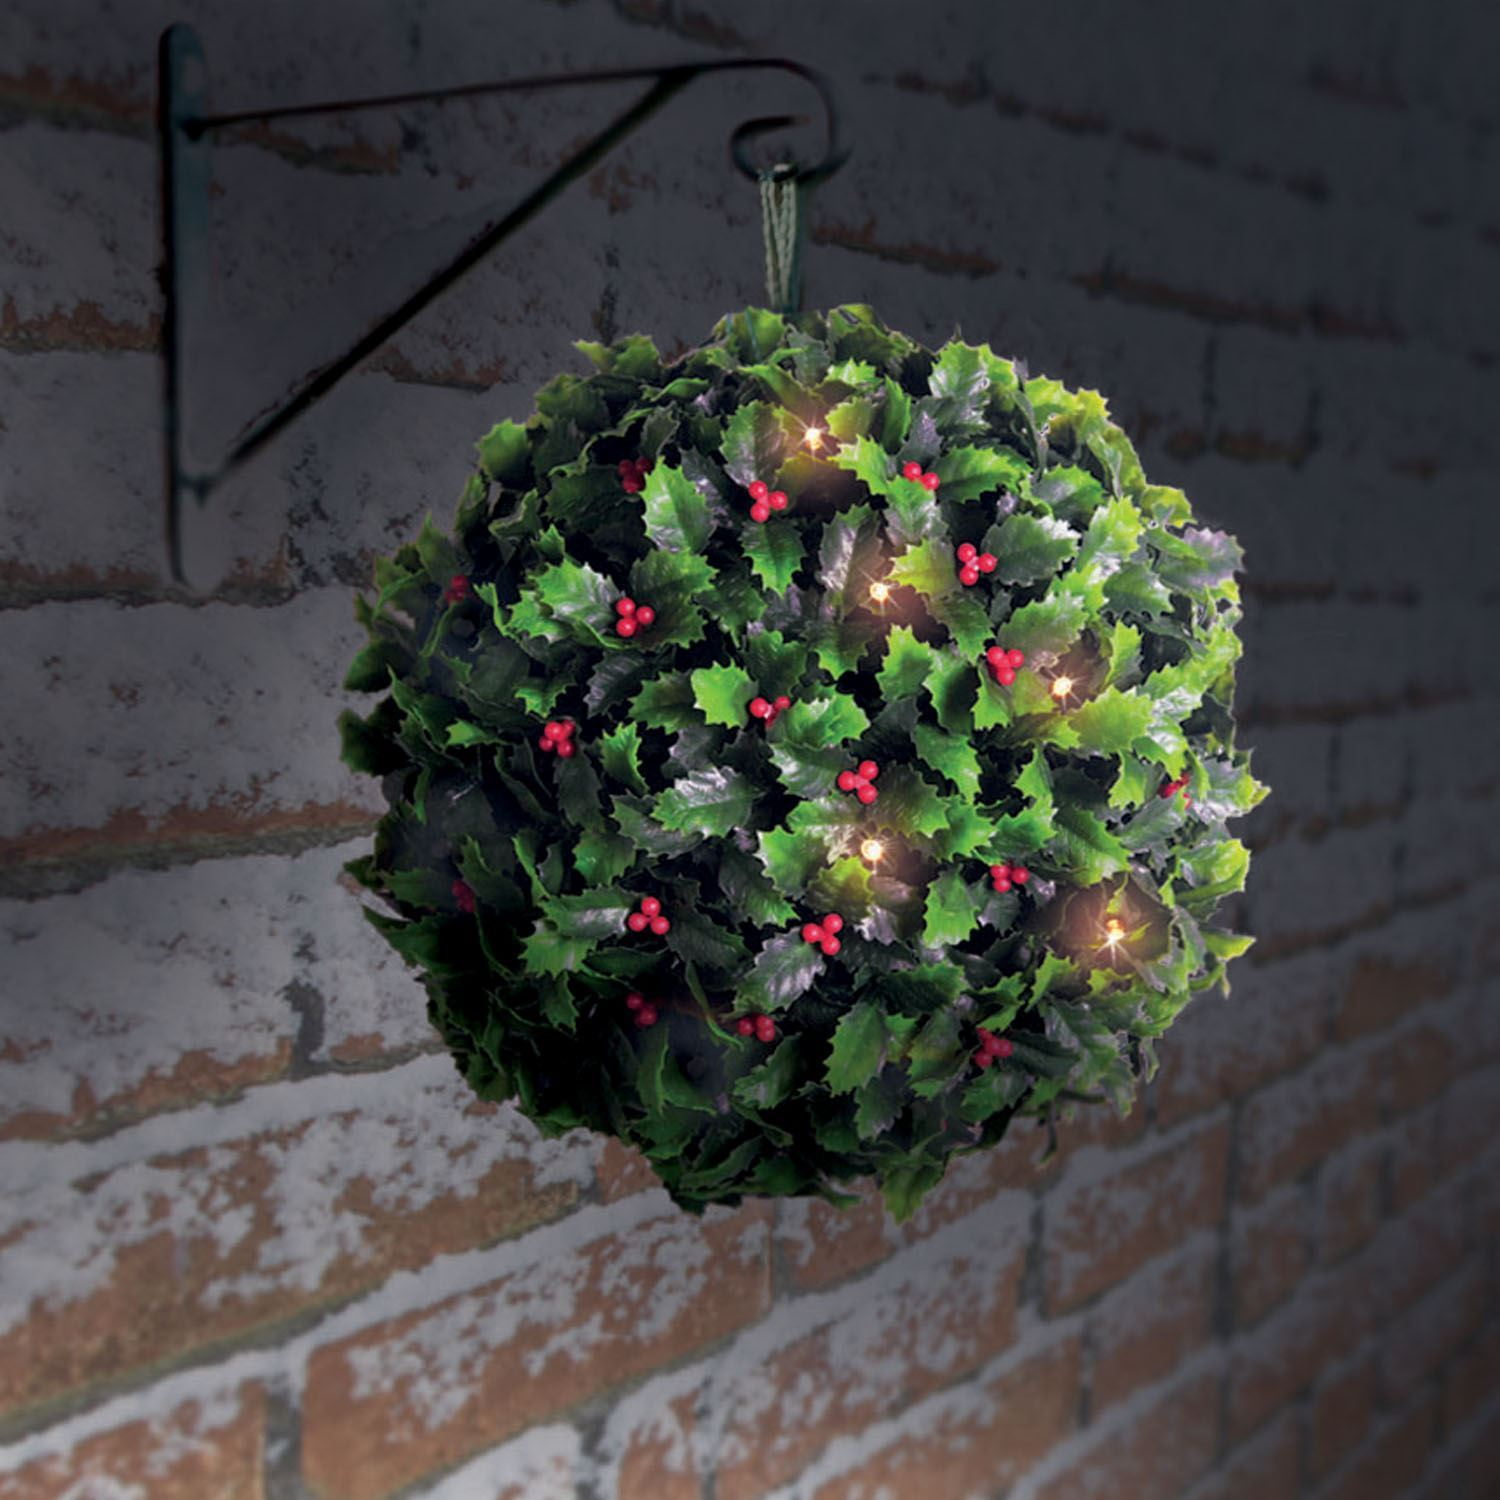 Christmas Topiary Balls.Details About 28cm Solar Holly Berry Topiary Ball With 20 Led Lights Christmas Decoration